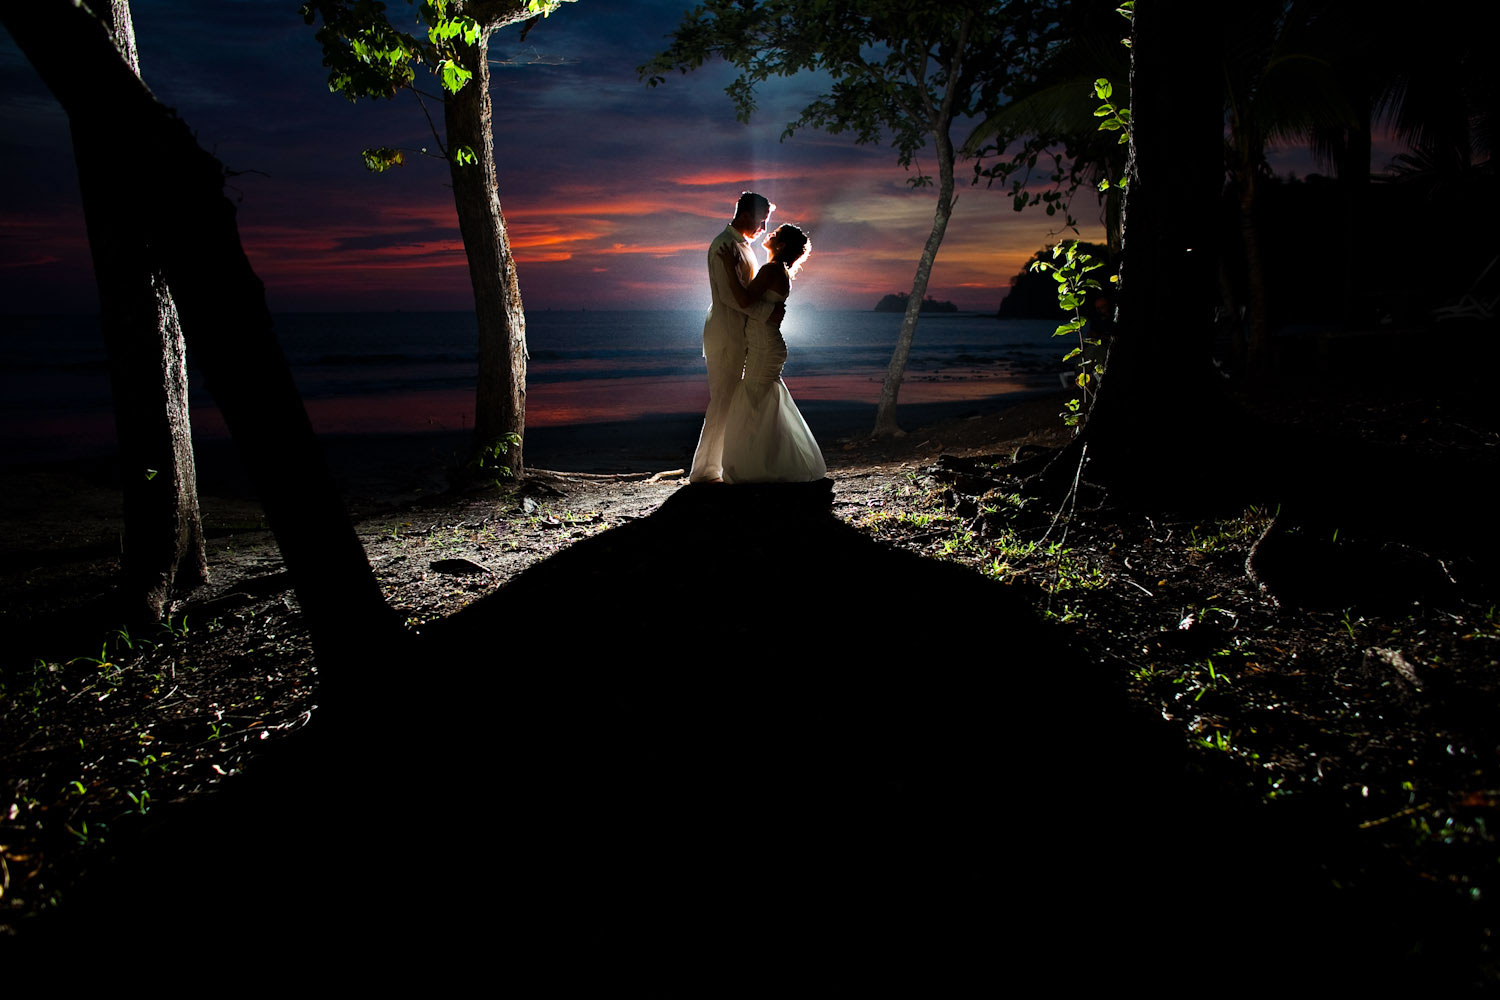 A portrait of a bride and groom at their wedding on Sugar Beach in Costa Rica.